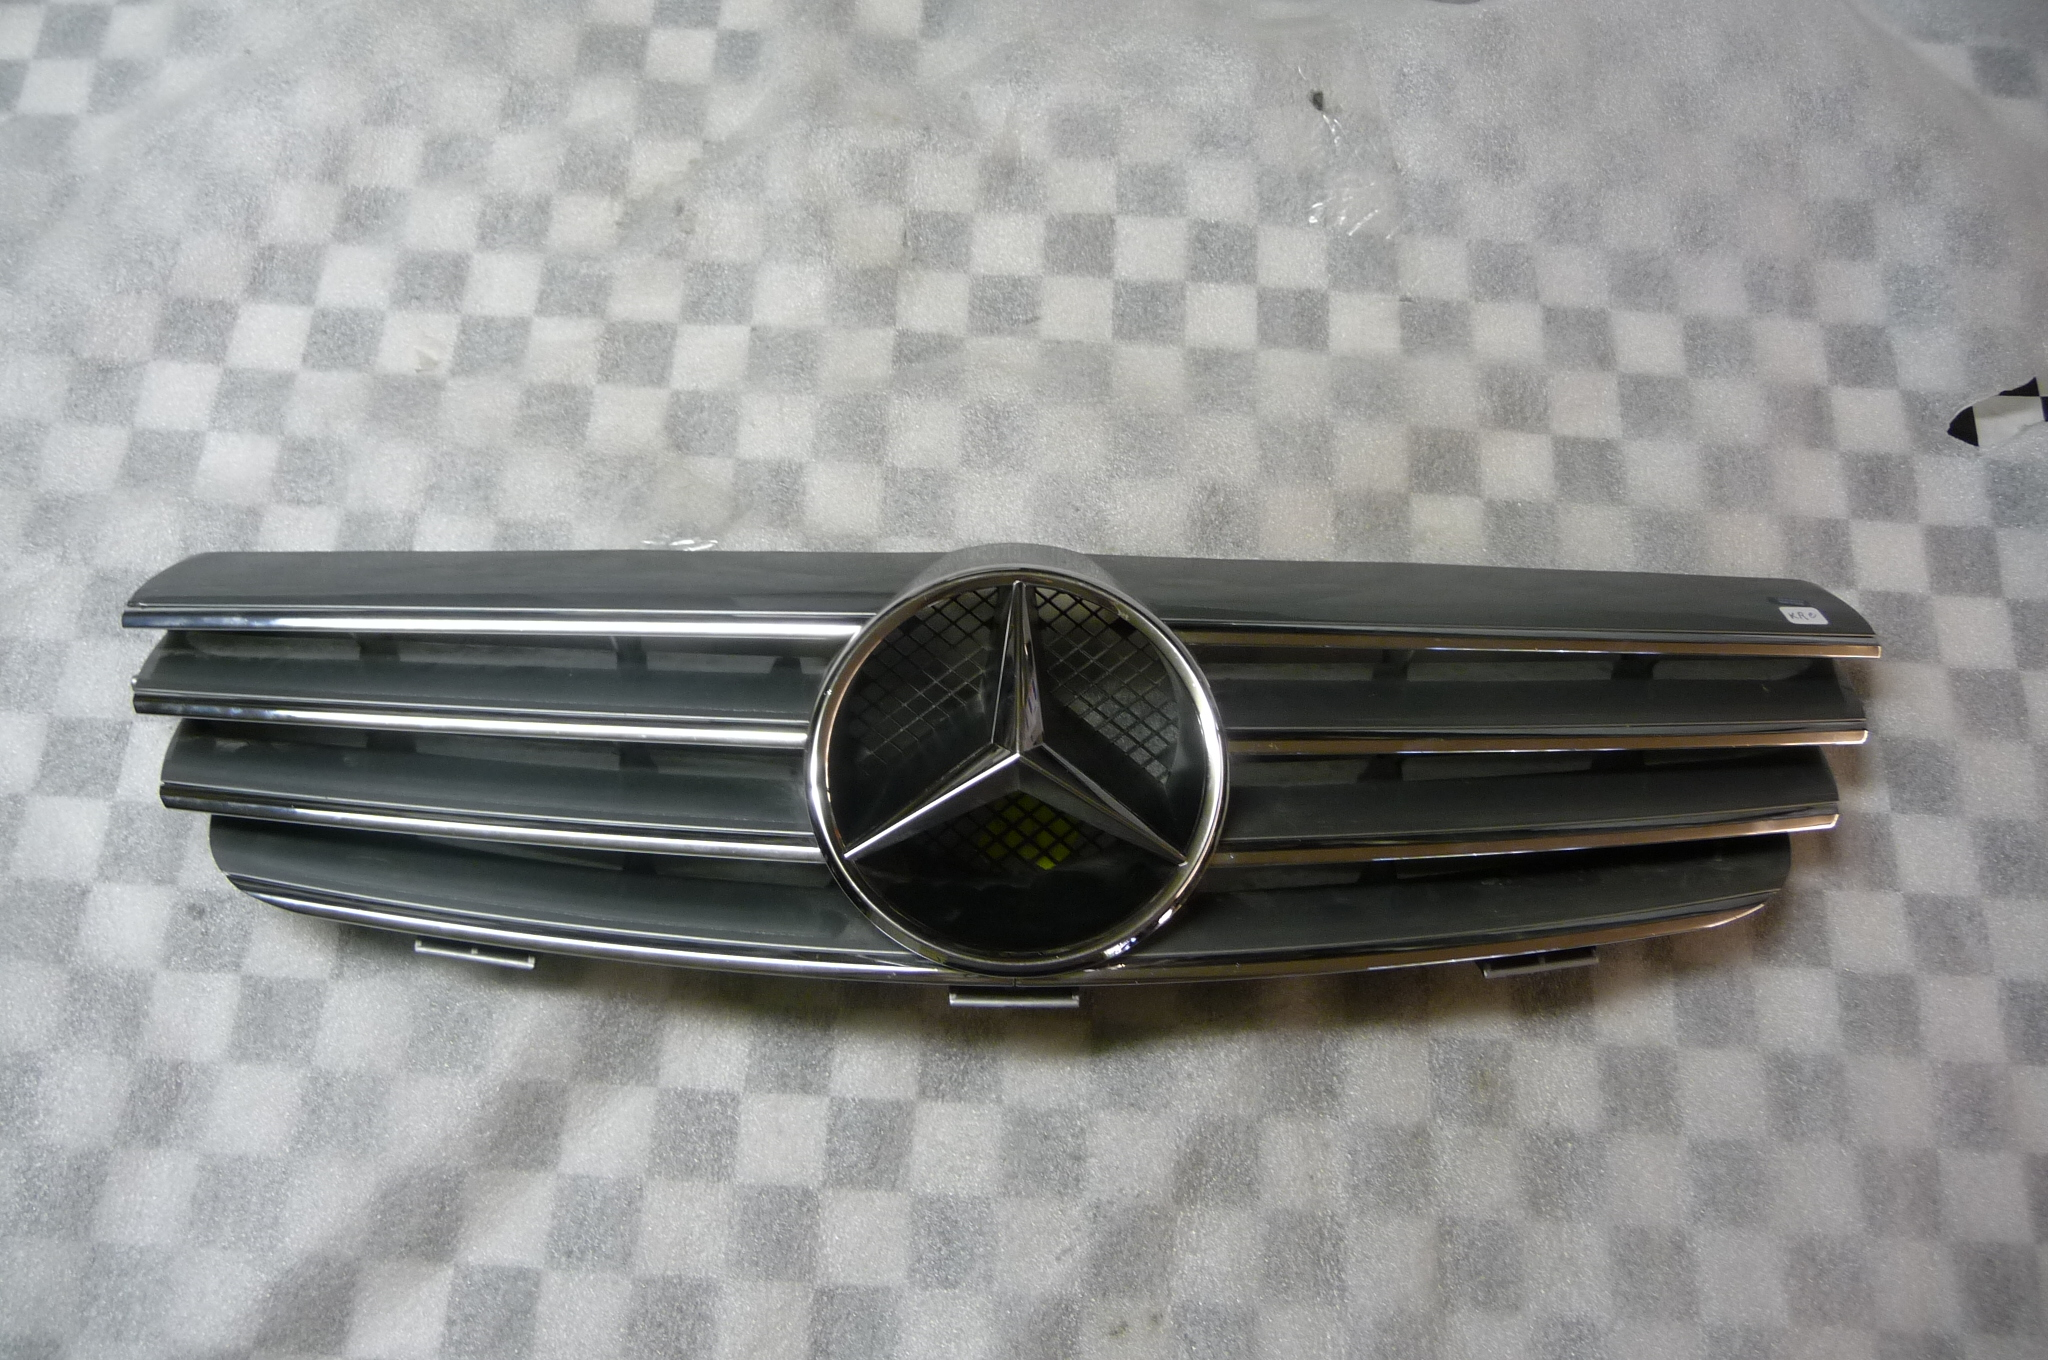 Mercedes Benz CLK Class W209 Front Radiator Grille Grill 2098800383 7246 OEM OE